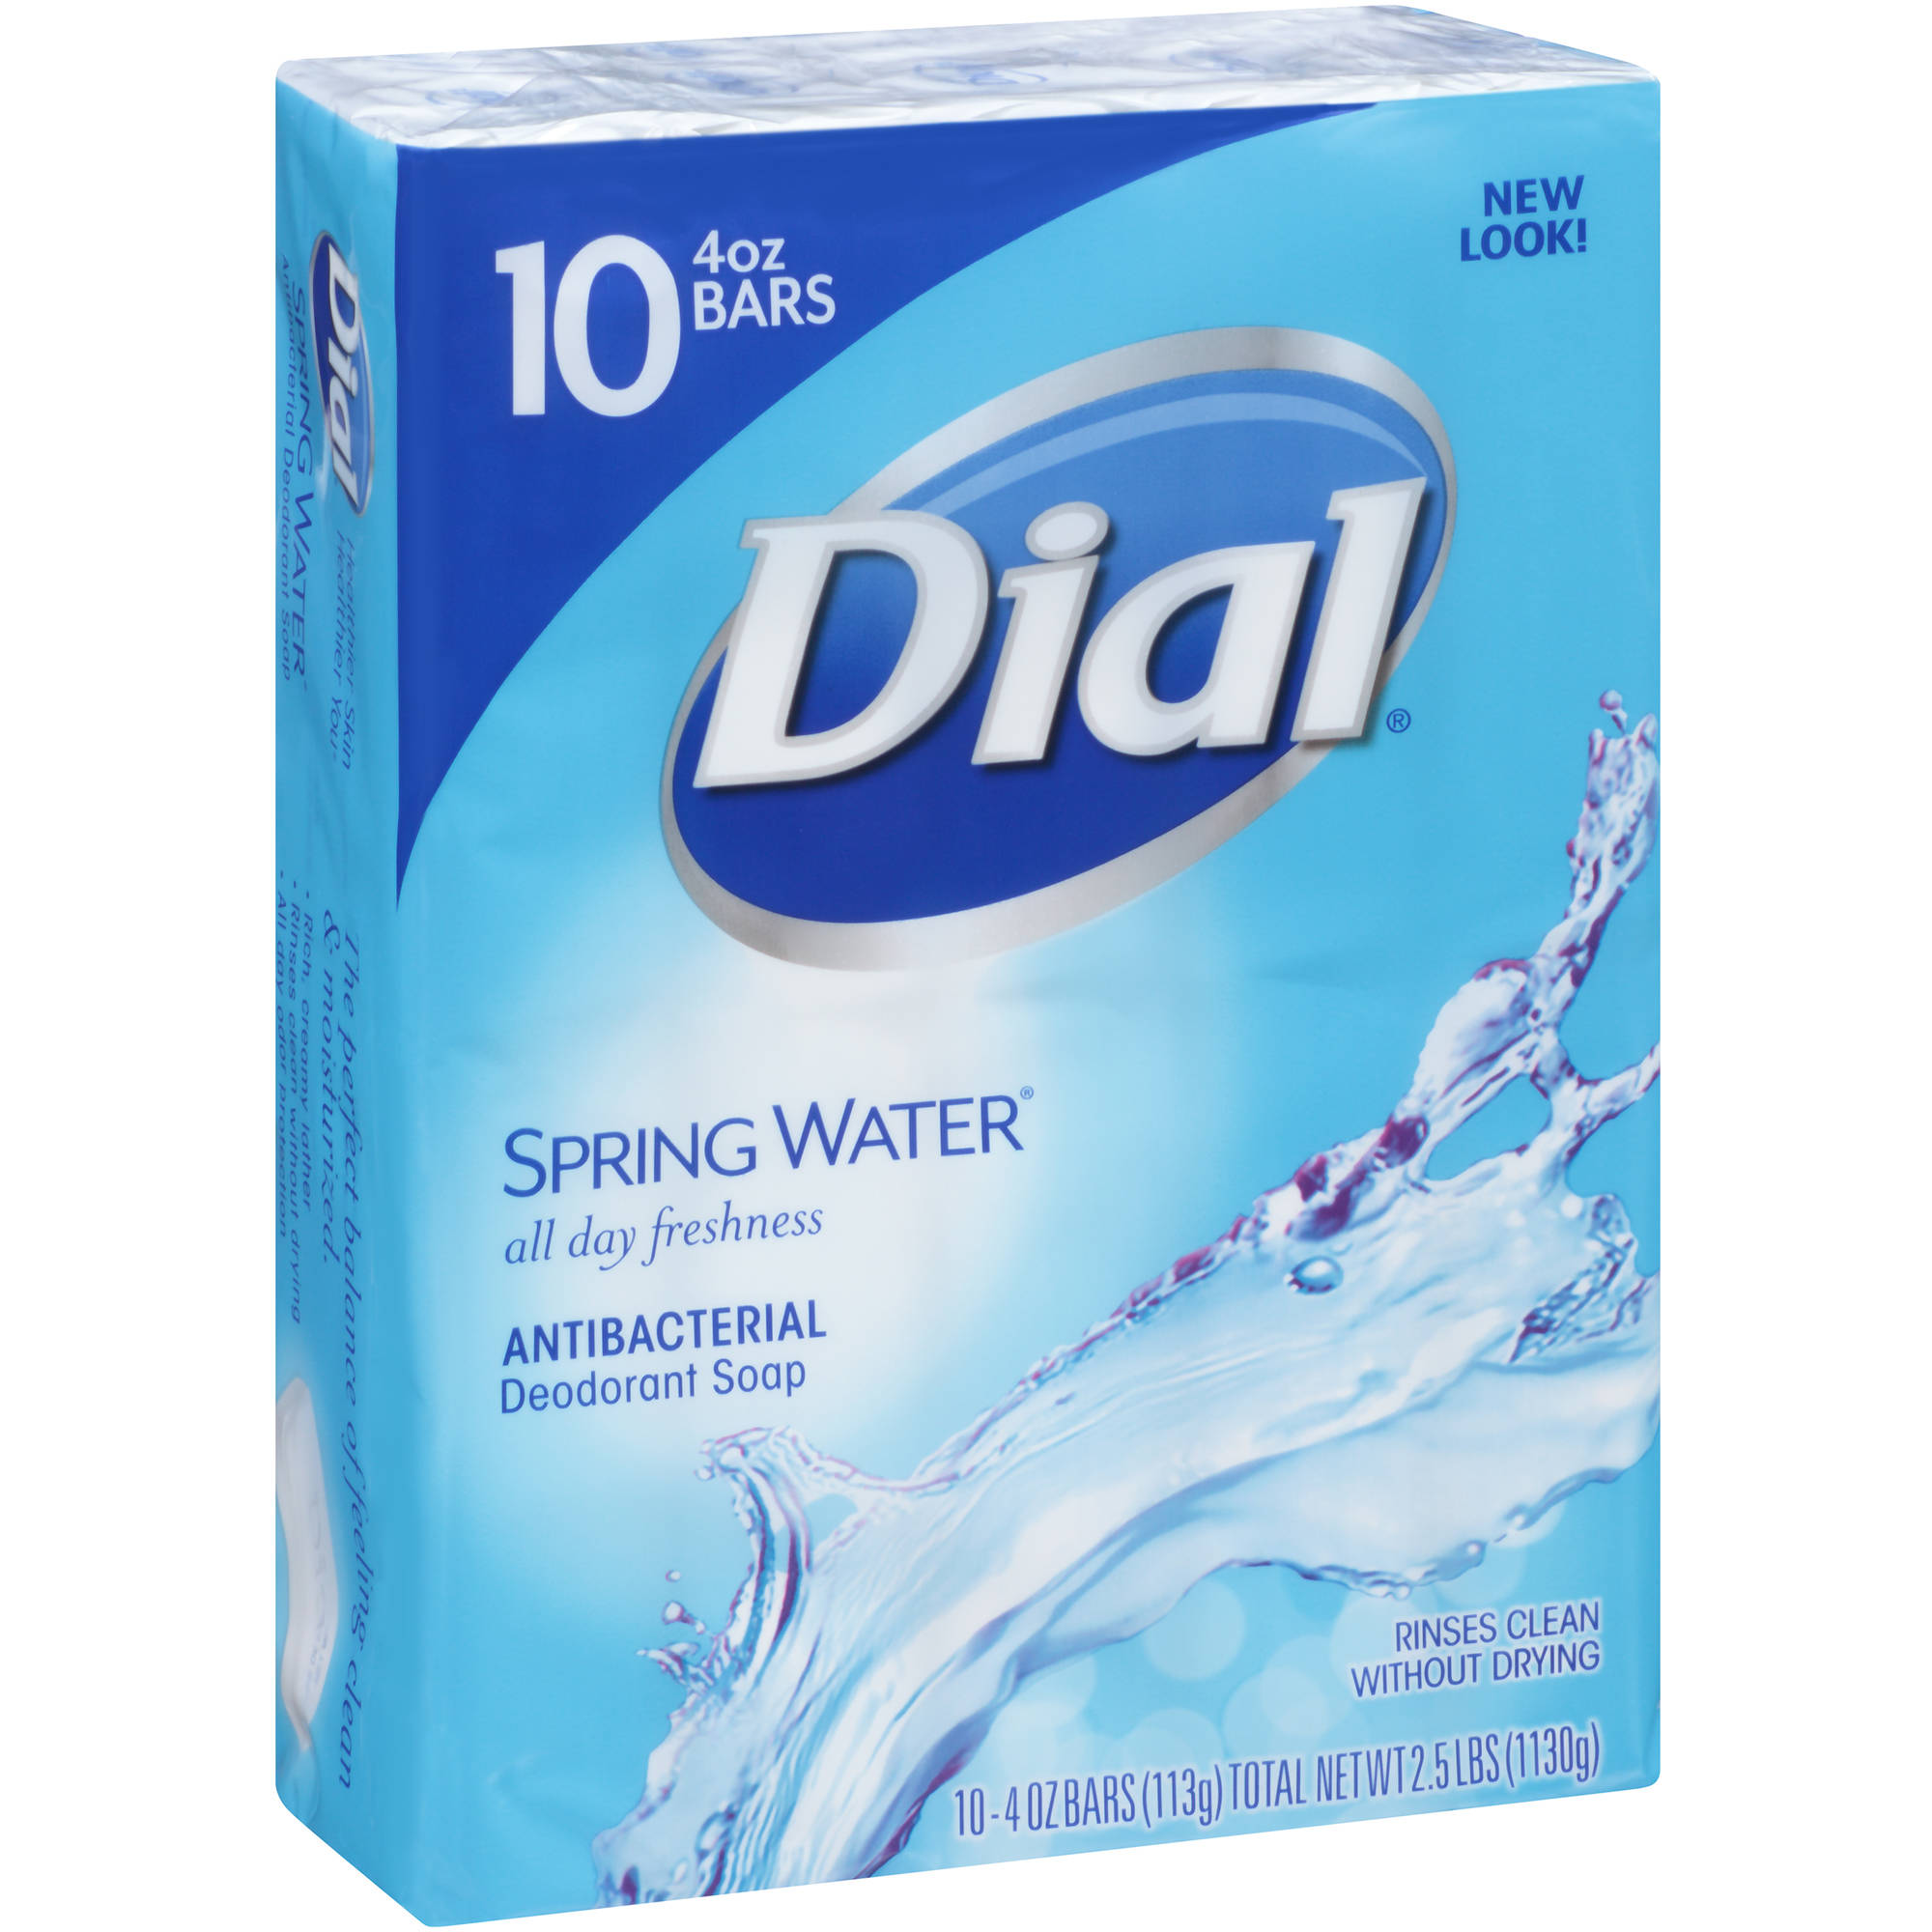 Dial Spring Water Antibacterial Deodorant Soap, 4 oz, 10 count